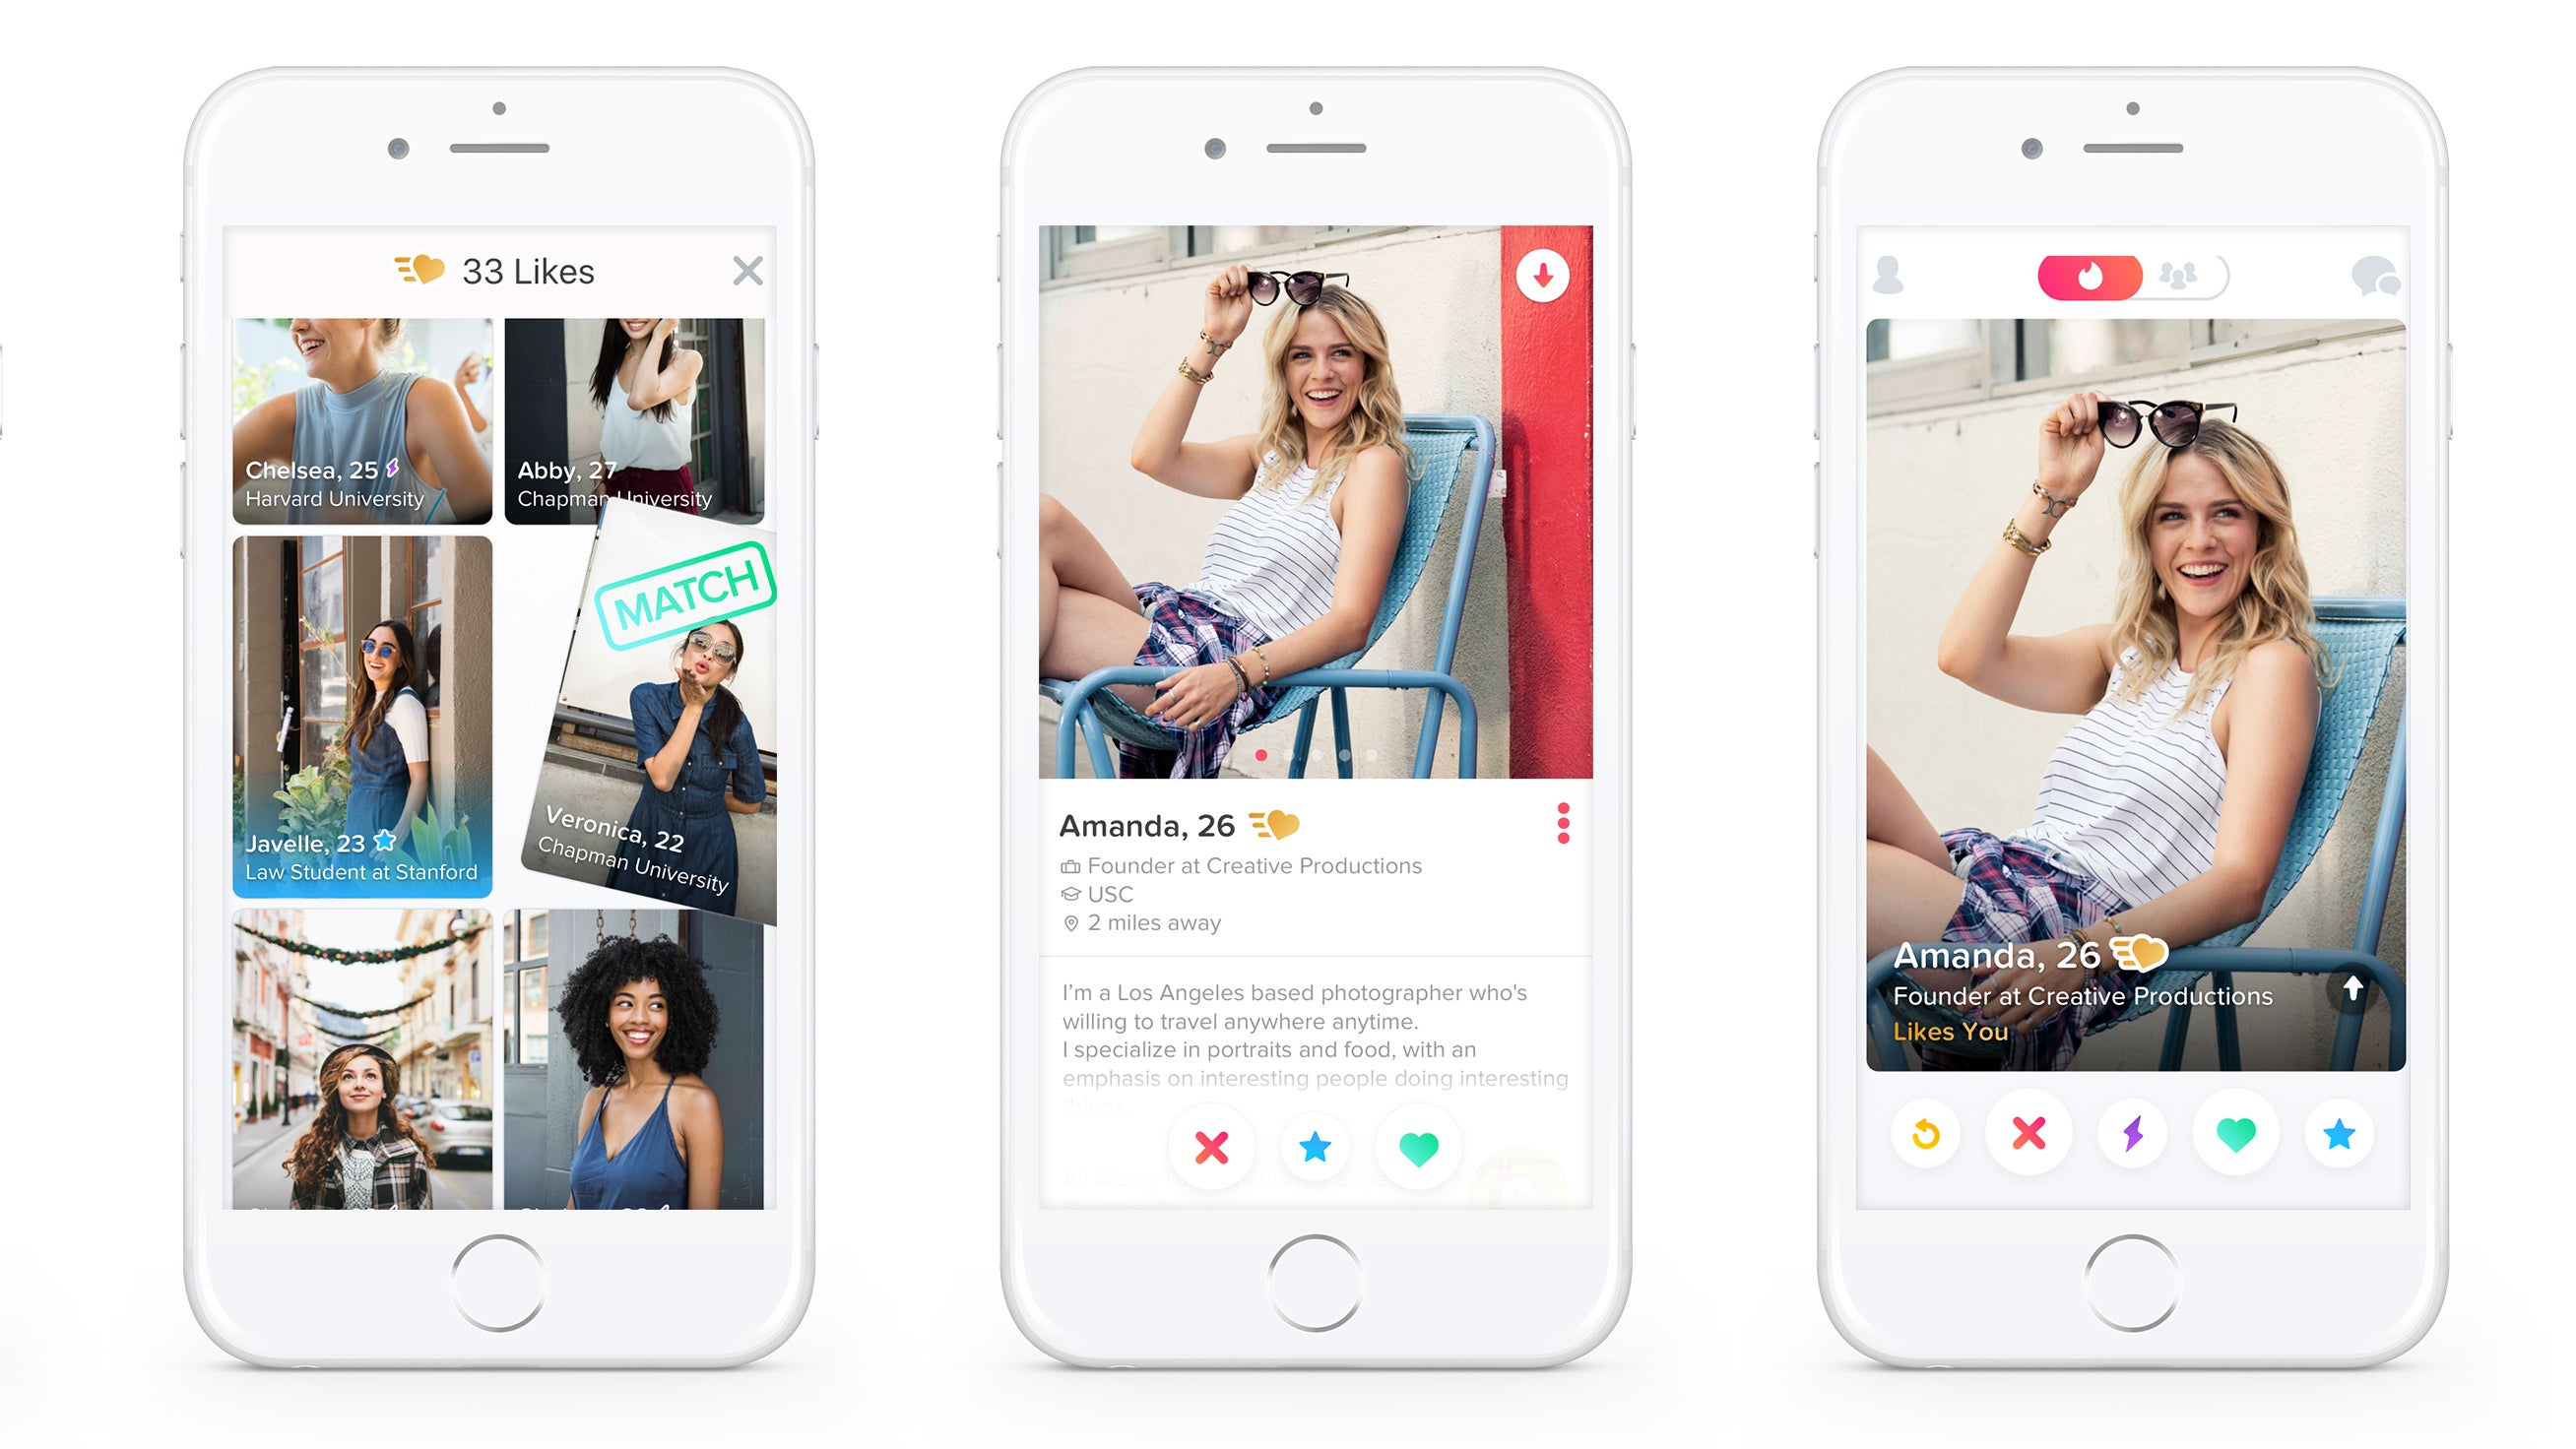 Tinder Gold Lets You See Who Has Liked You Before You Swipe